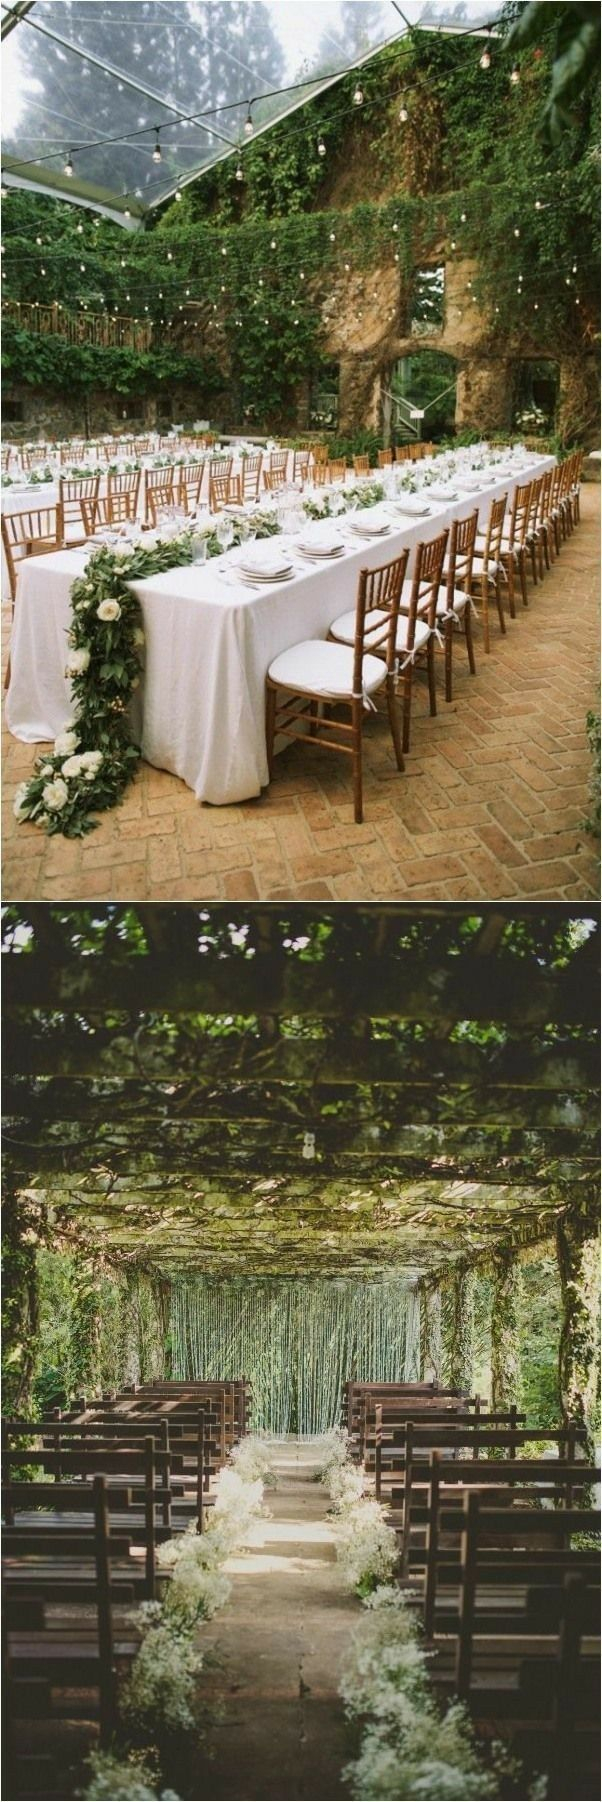 Amazing Covered Outdoor Wedding Venue Fairytale Inspiration Inspo More Ideas